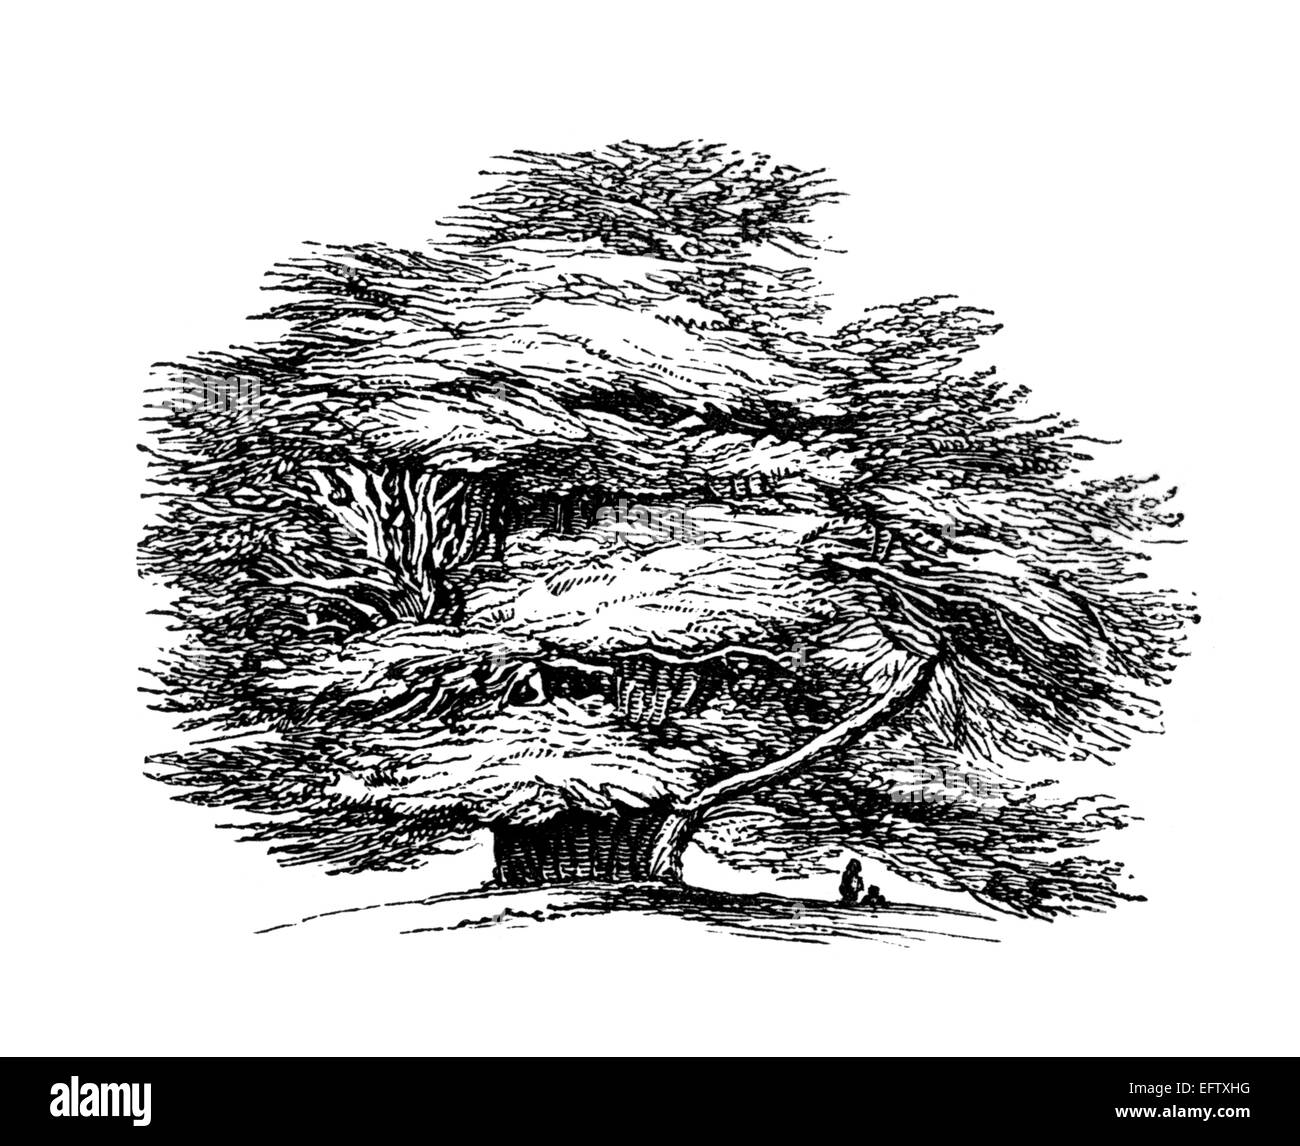 Victorian engraving of the Ankerwyke Yew.  Digitally restored image from a mid-19th century Encyclopaedia. - Stock Image